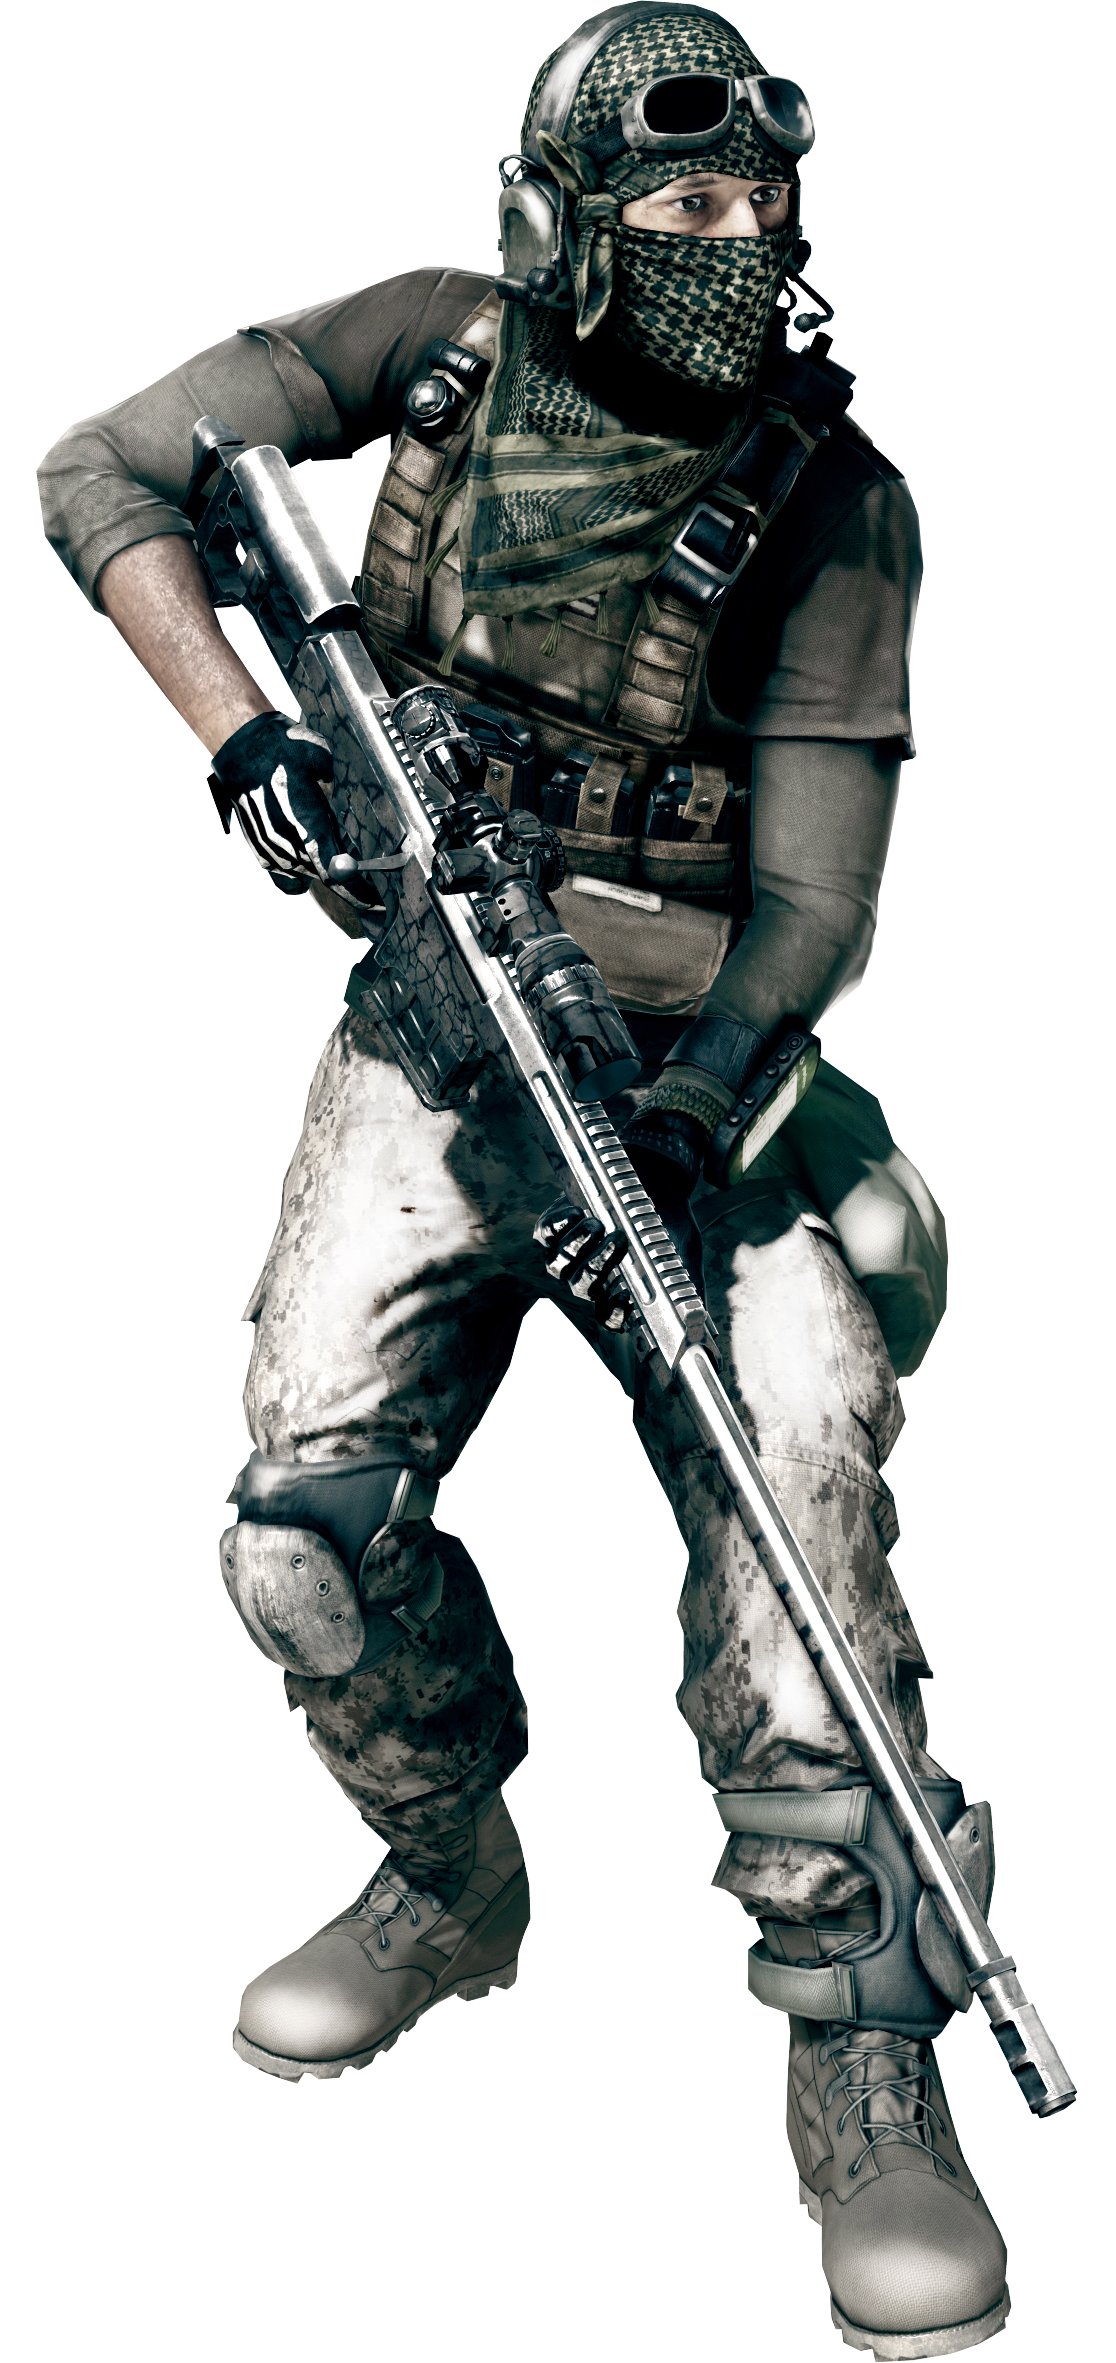 Battlefield transparent 4. Png images group with